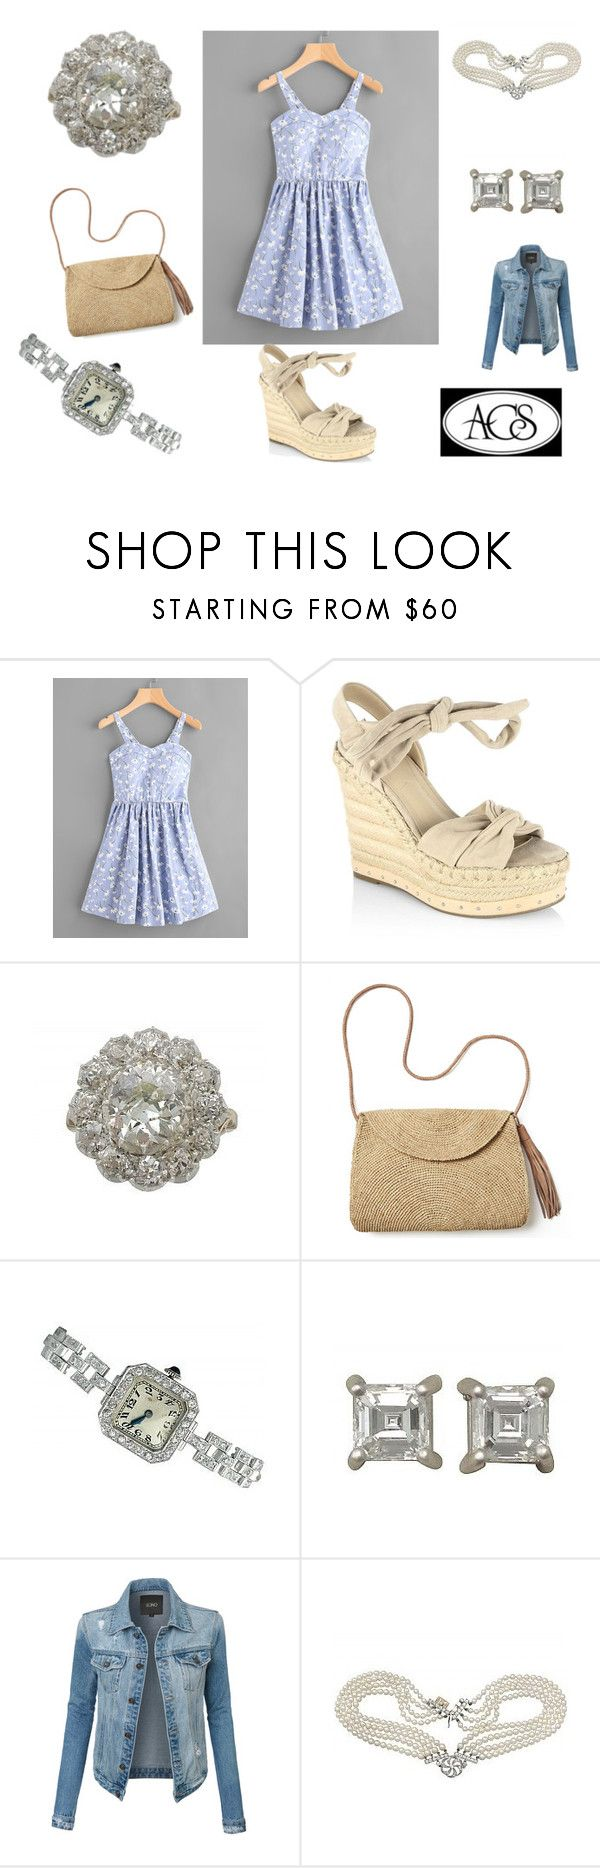 """""""Espadrilles - Contest"""" by ac-silver ❤ liked on Polyvore featuring Kendall + Kylie, Mar y Sol, LE3NO and vintage"""